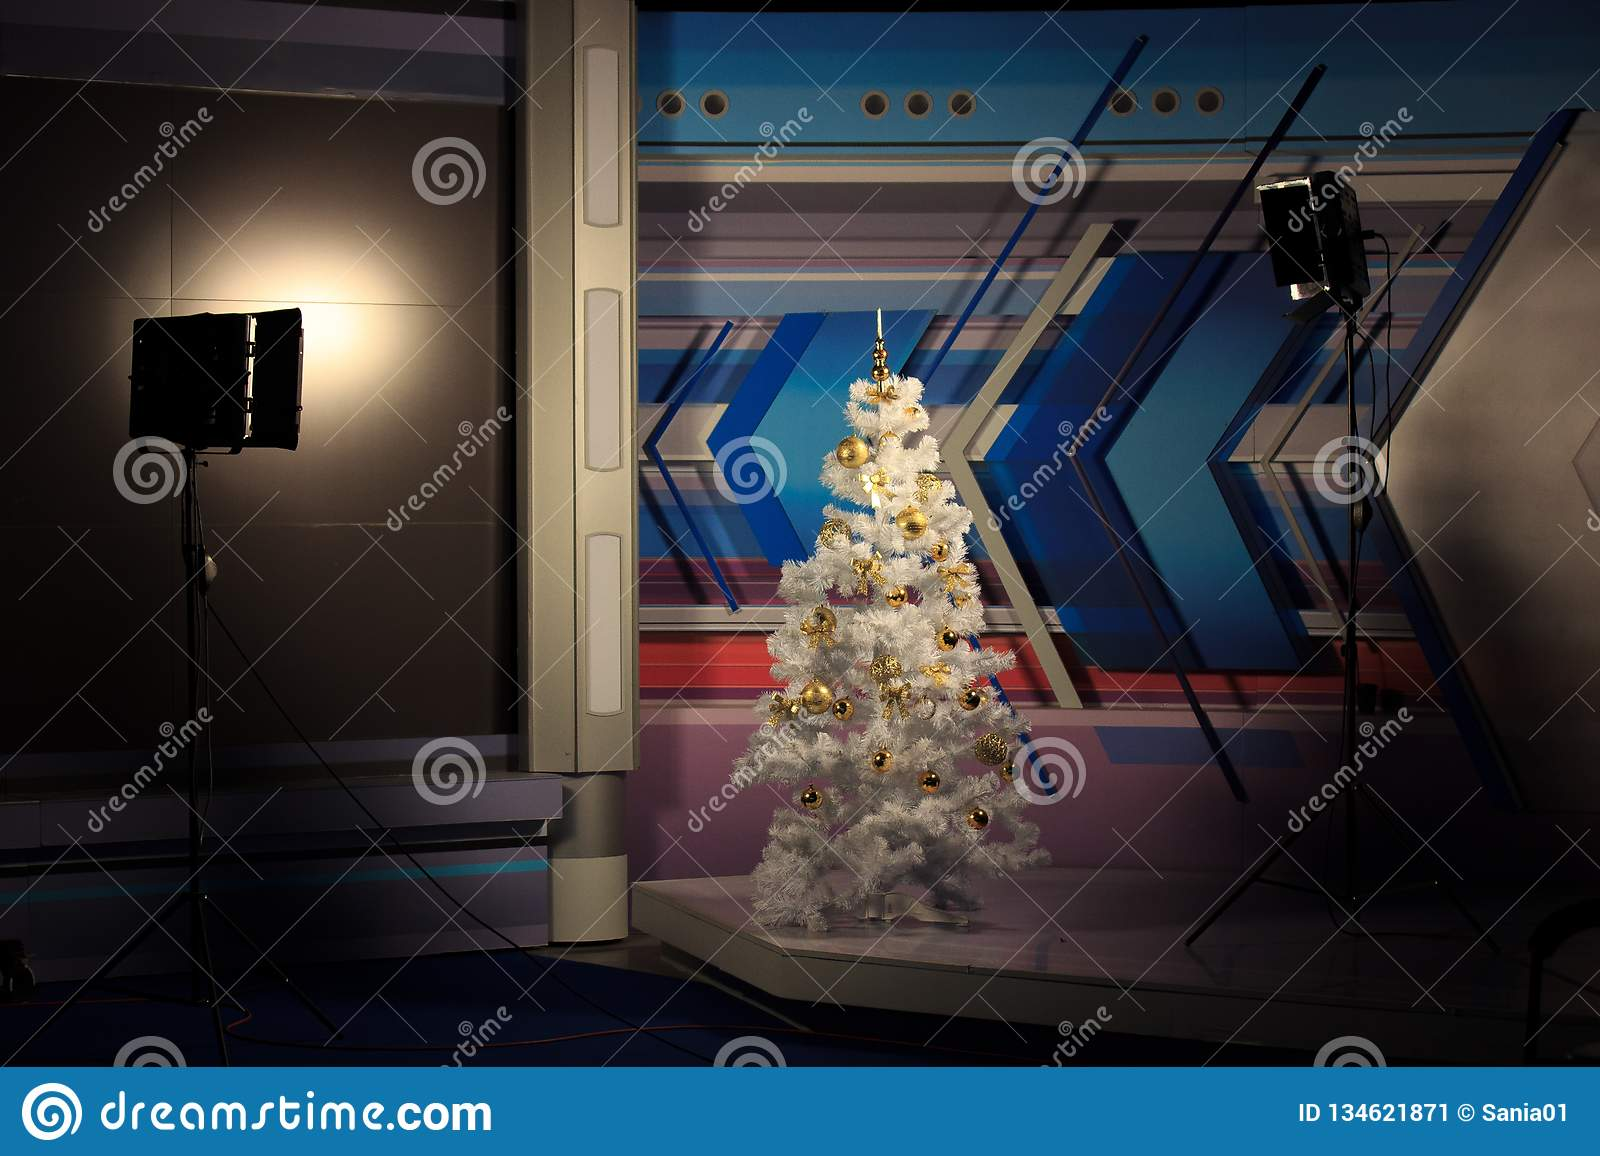 Christmas Tree In The Studio Video Lighting On Both Sides